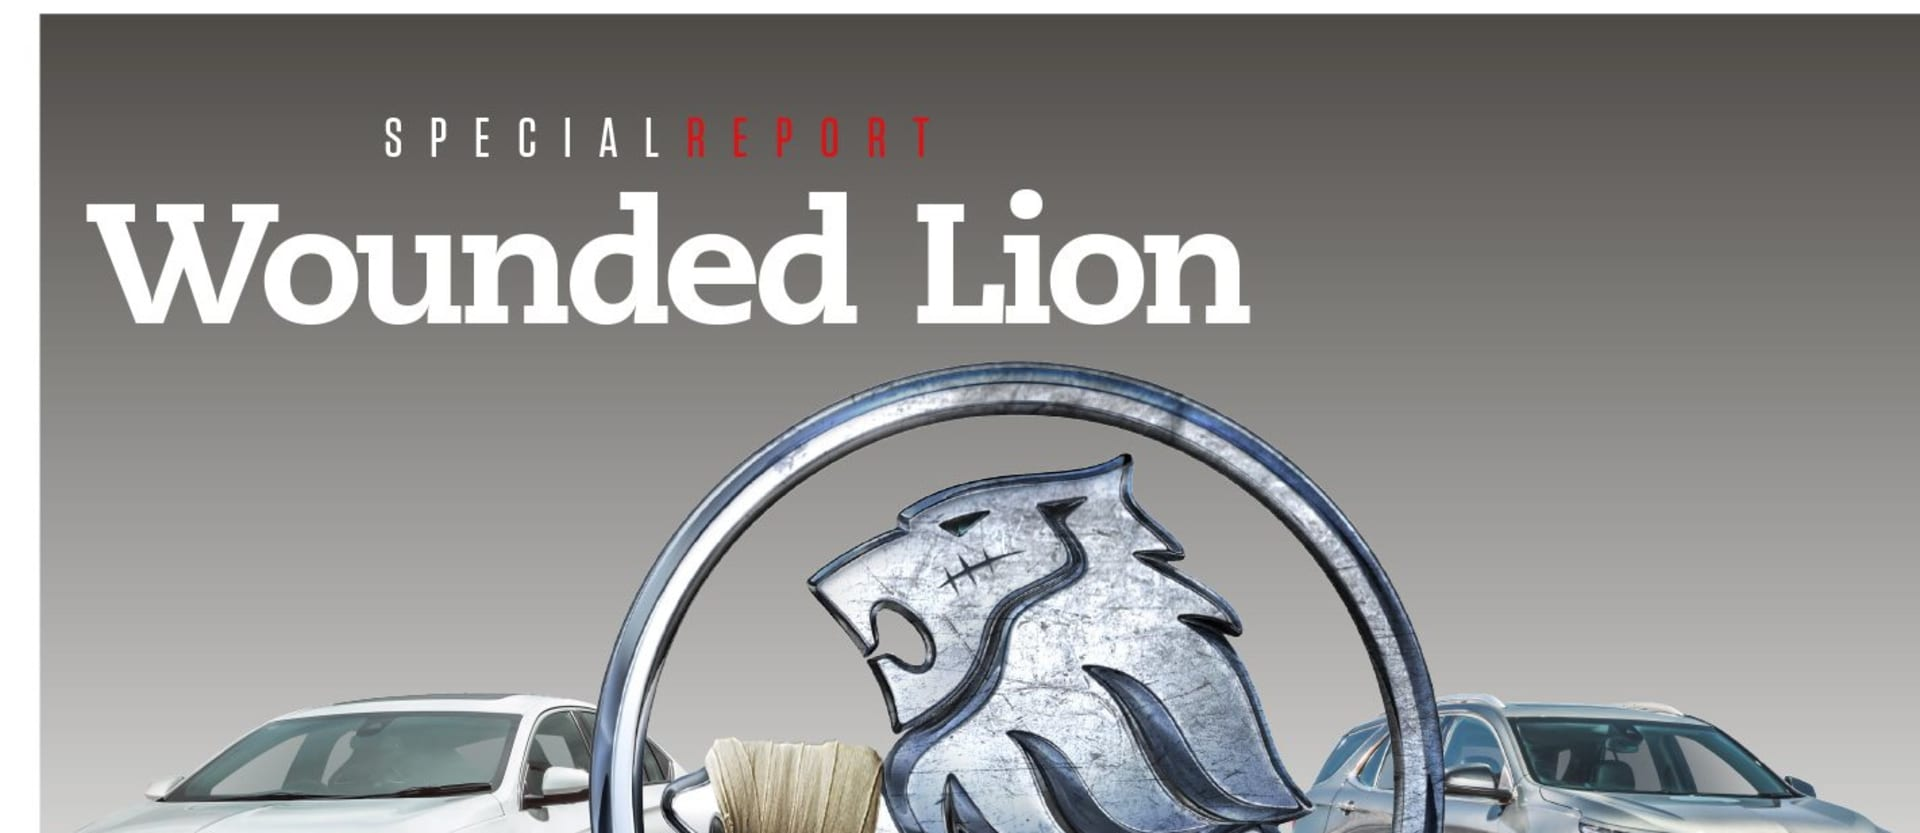 Wounded Lion Holden Jpg